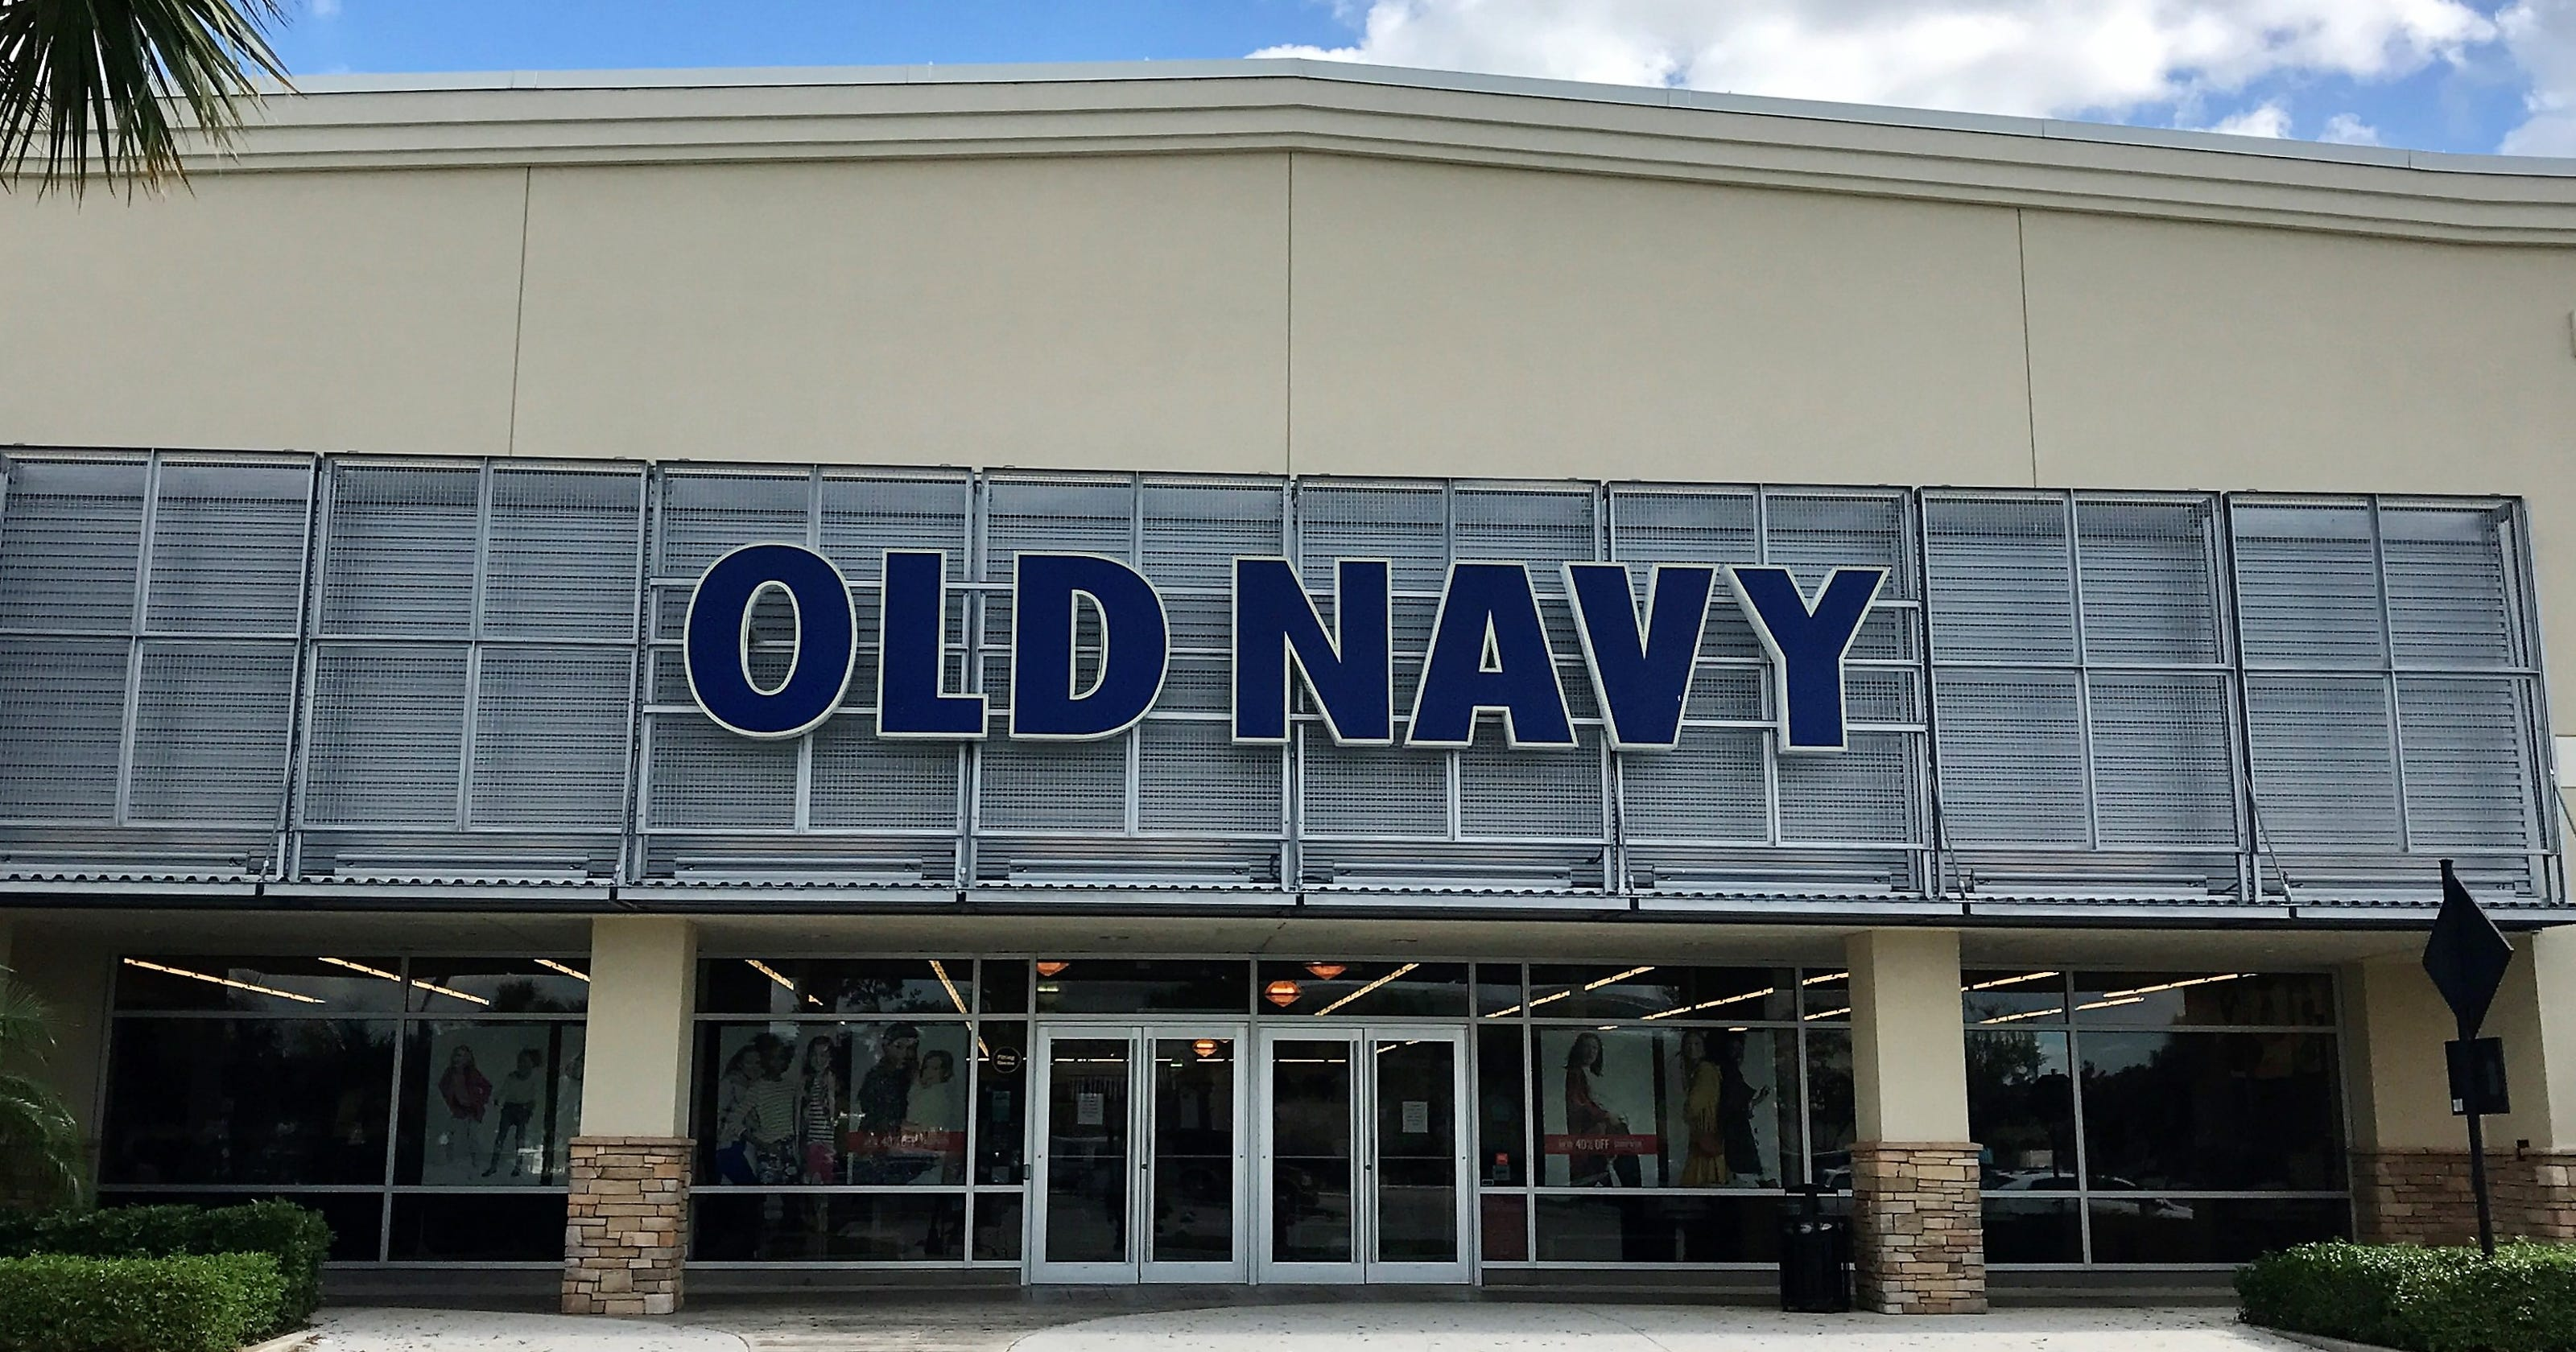 Old Navy, Skechers to open this fall at the Shoppes at Fox River